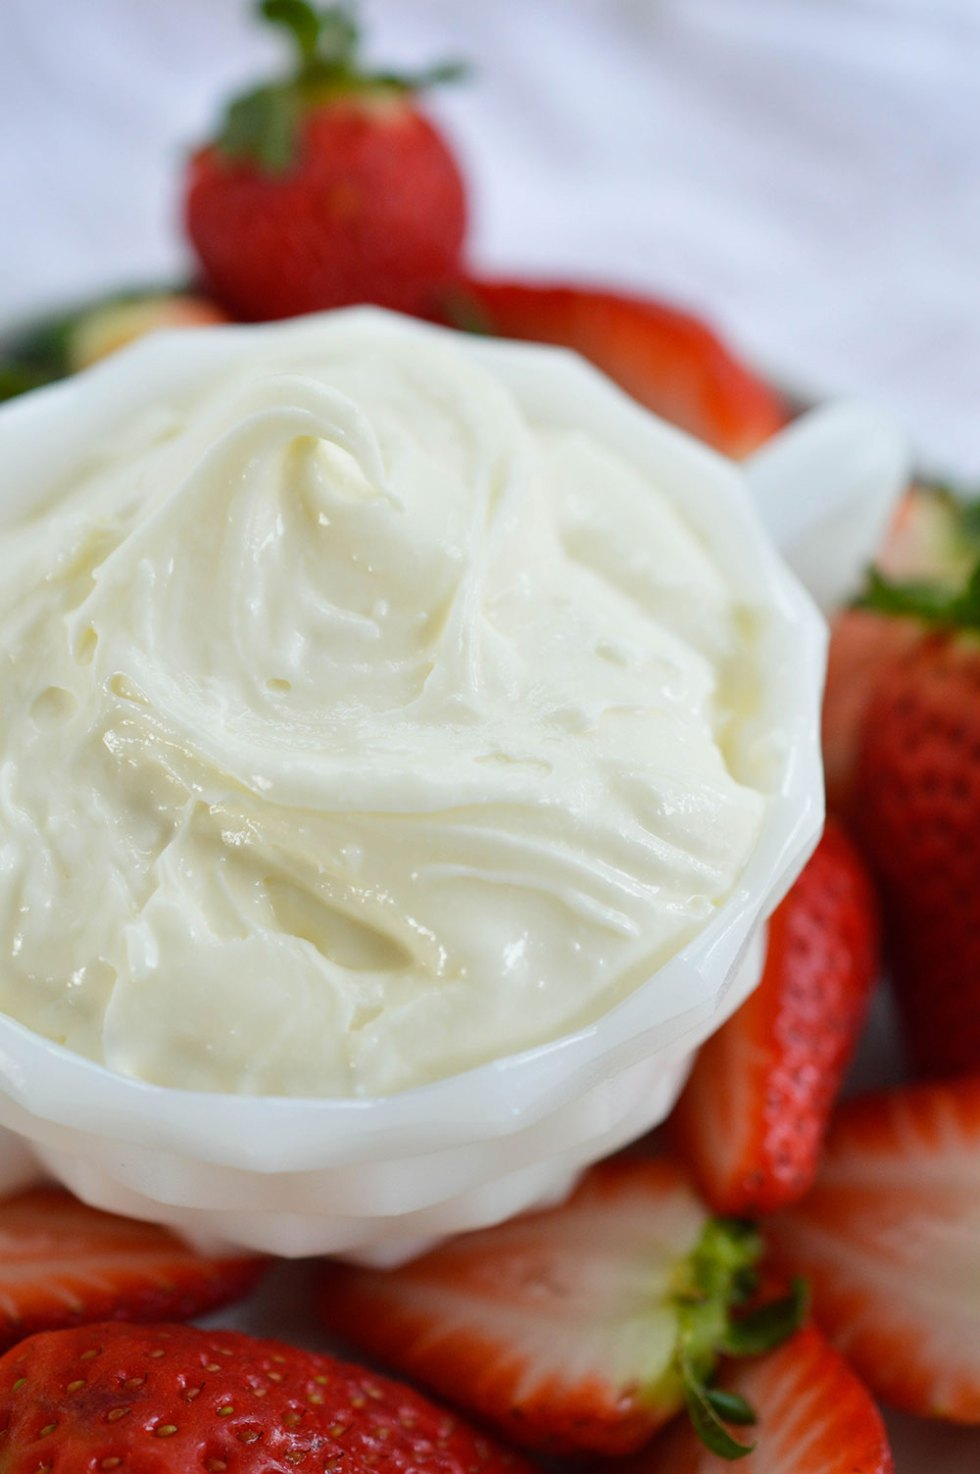 Marshmallow Fluff Fruit Dip - This easy dip recipe is made with 3 ingredients! Marshmallow Fluff, Cream Cheese and White Chocolate. An amazing dessert made in less than 5 minutes!